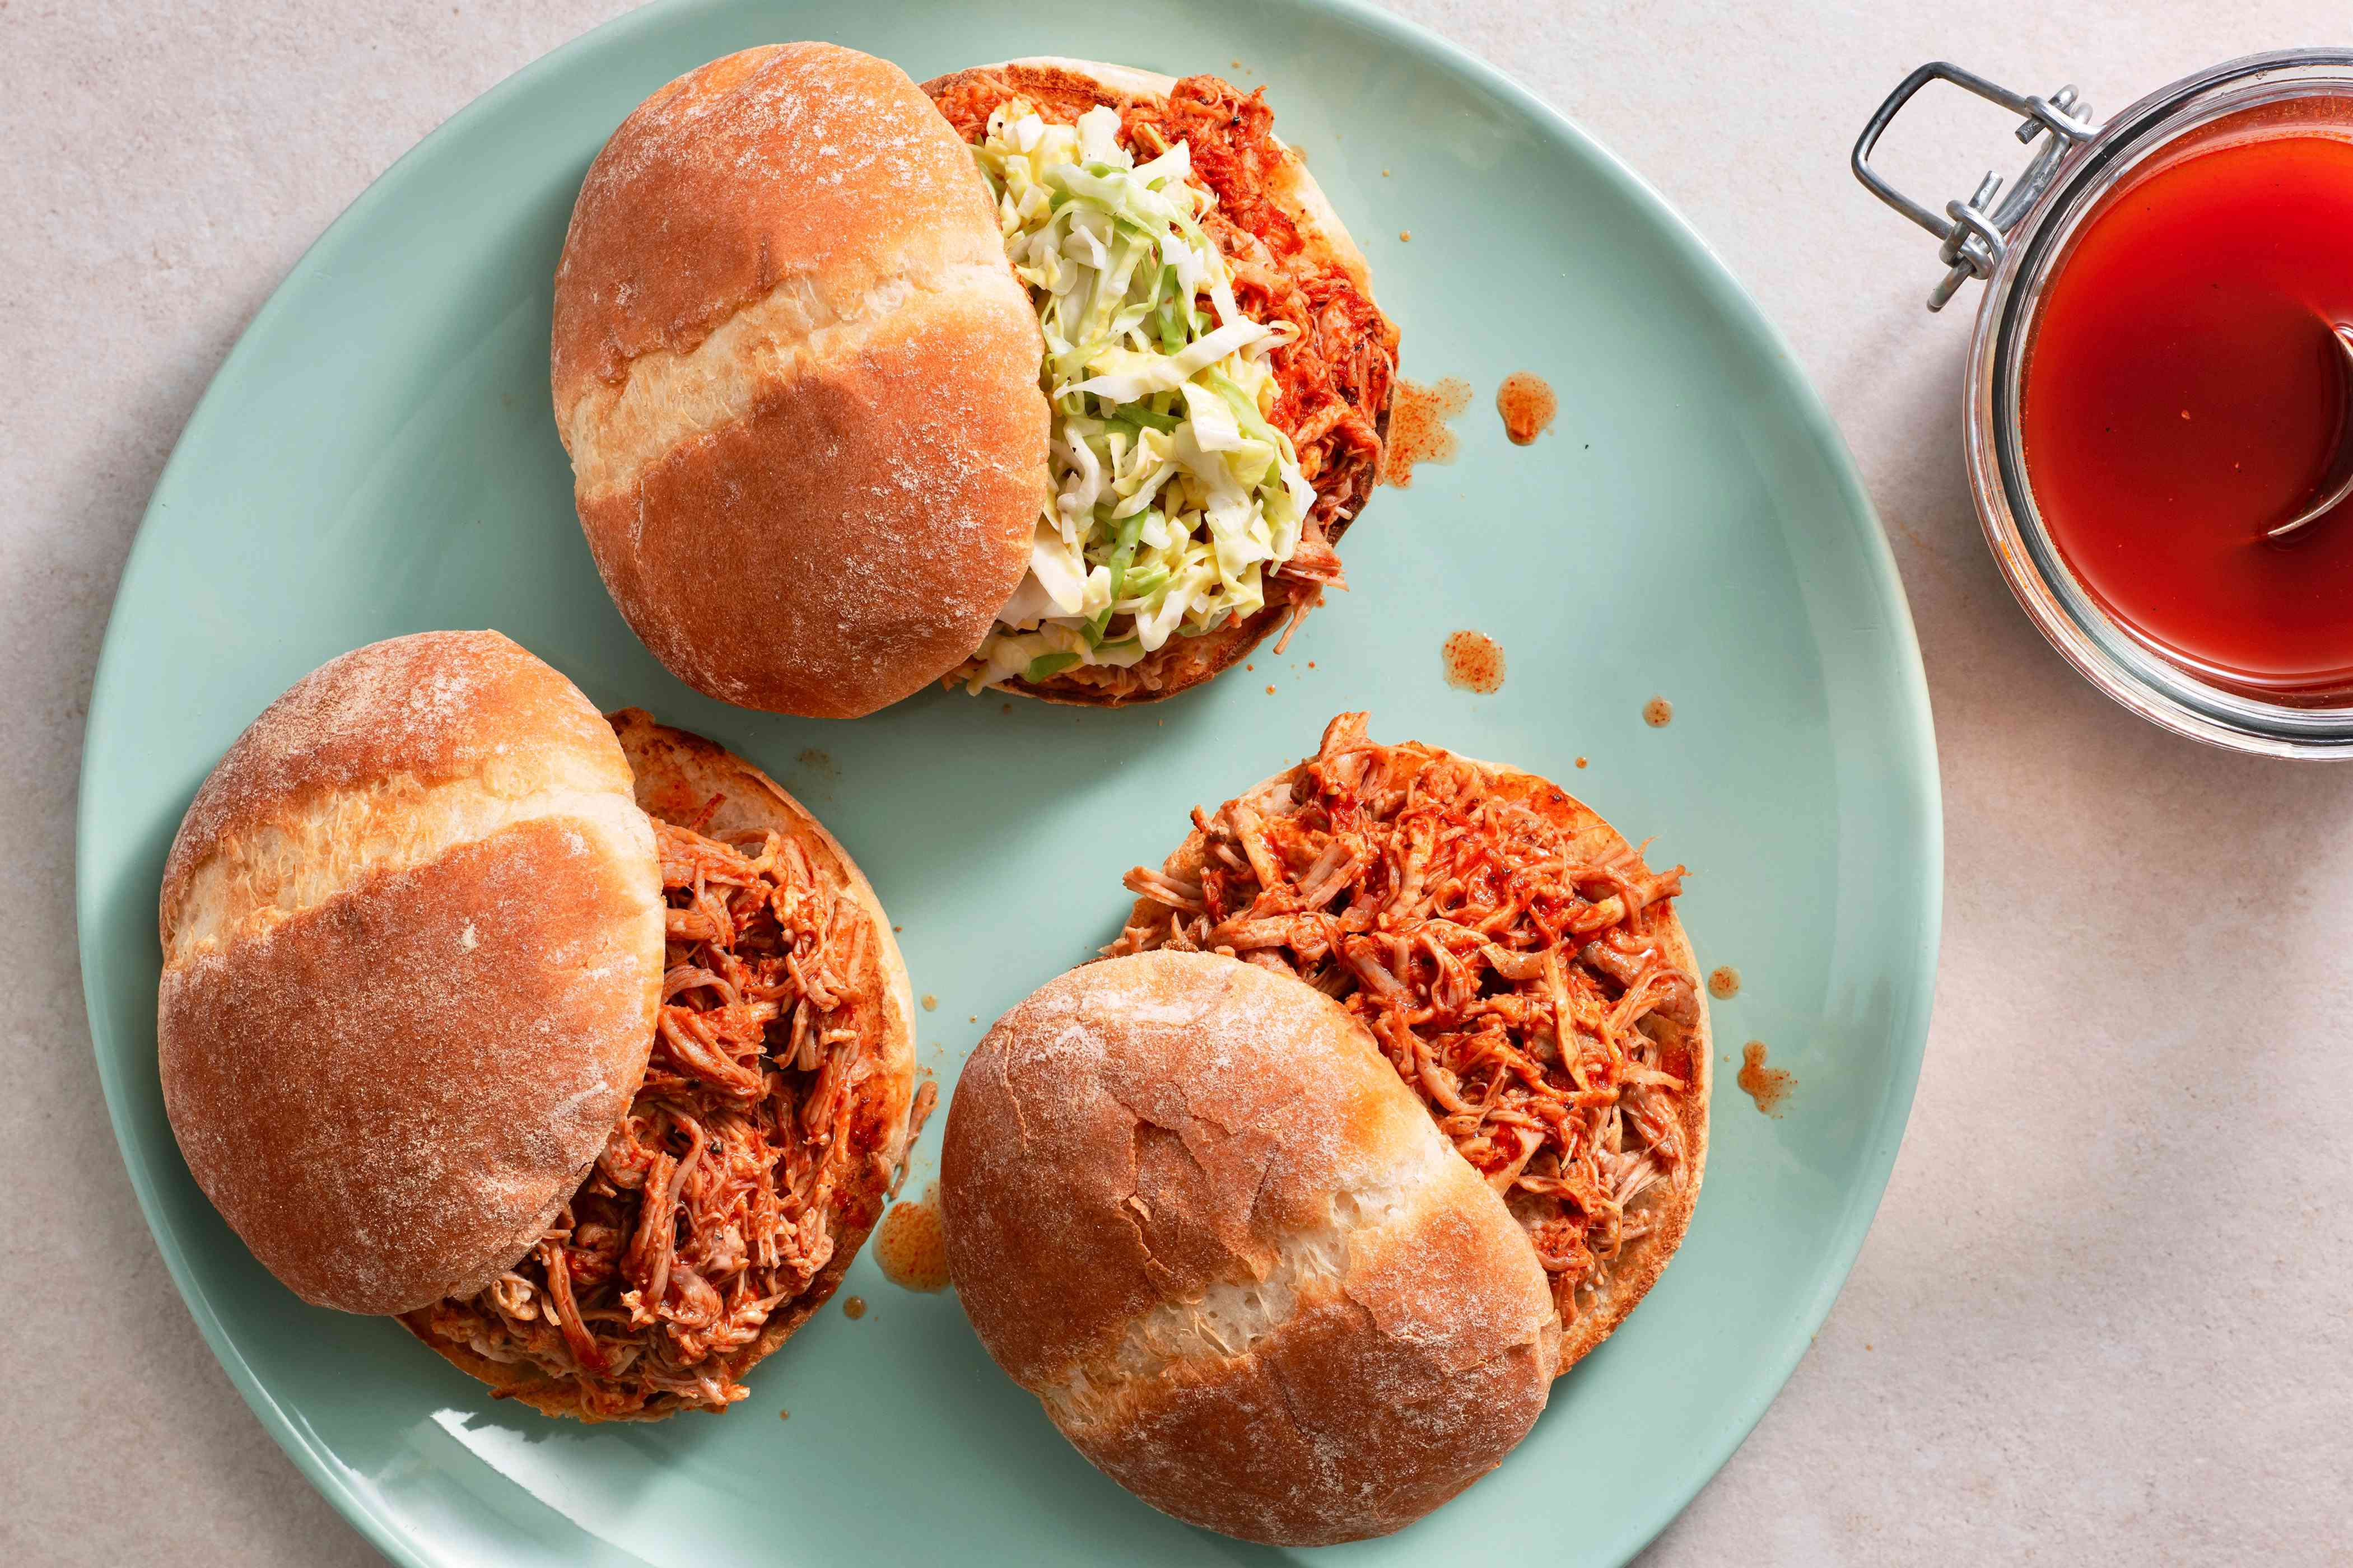 Best Odds Pulled Pork Barbecue Sauce